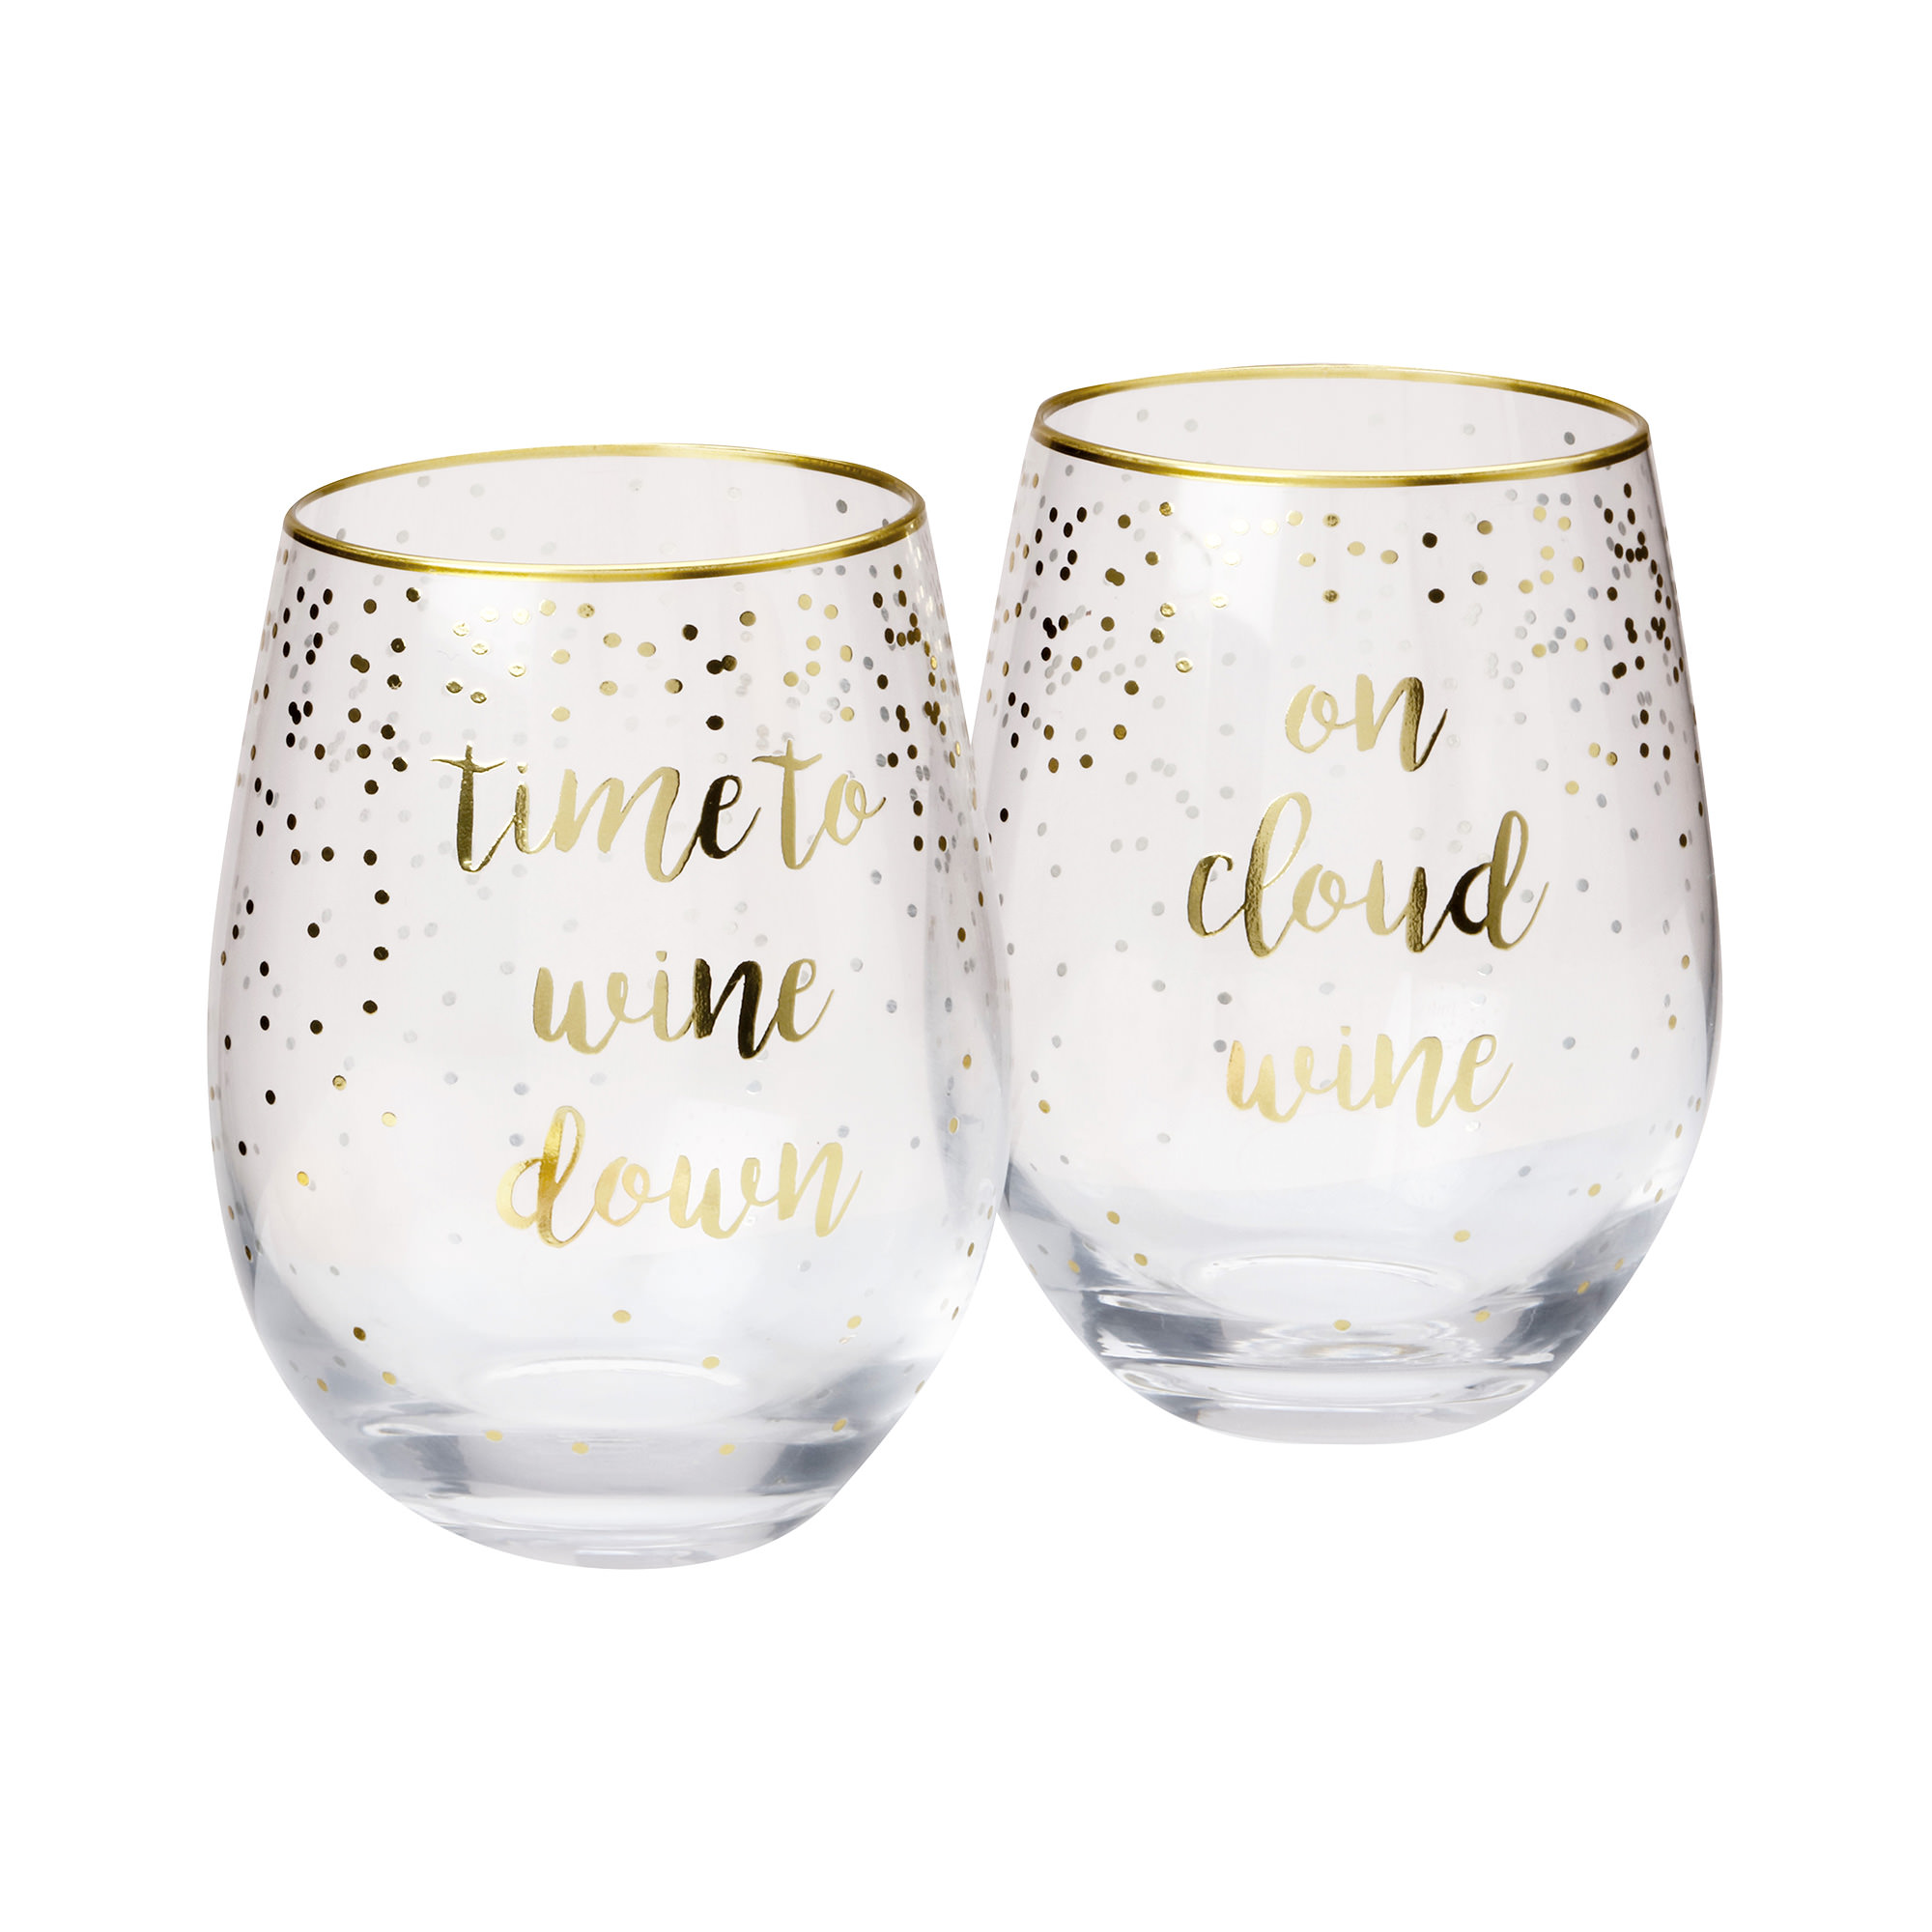 Maxwell & Williams Celebrations 2pc Stemless Glass Set 500ml Cloud Time